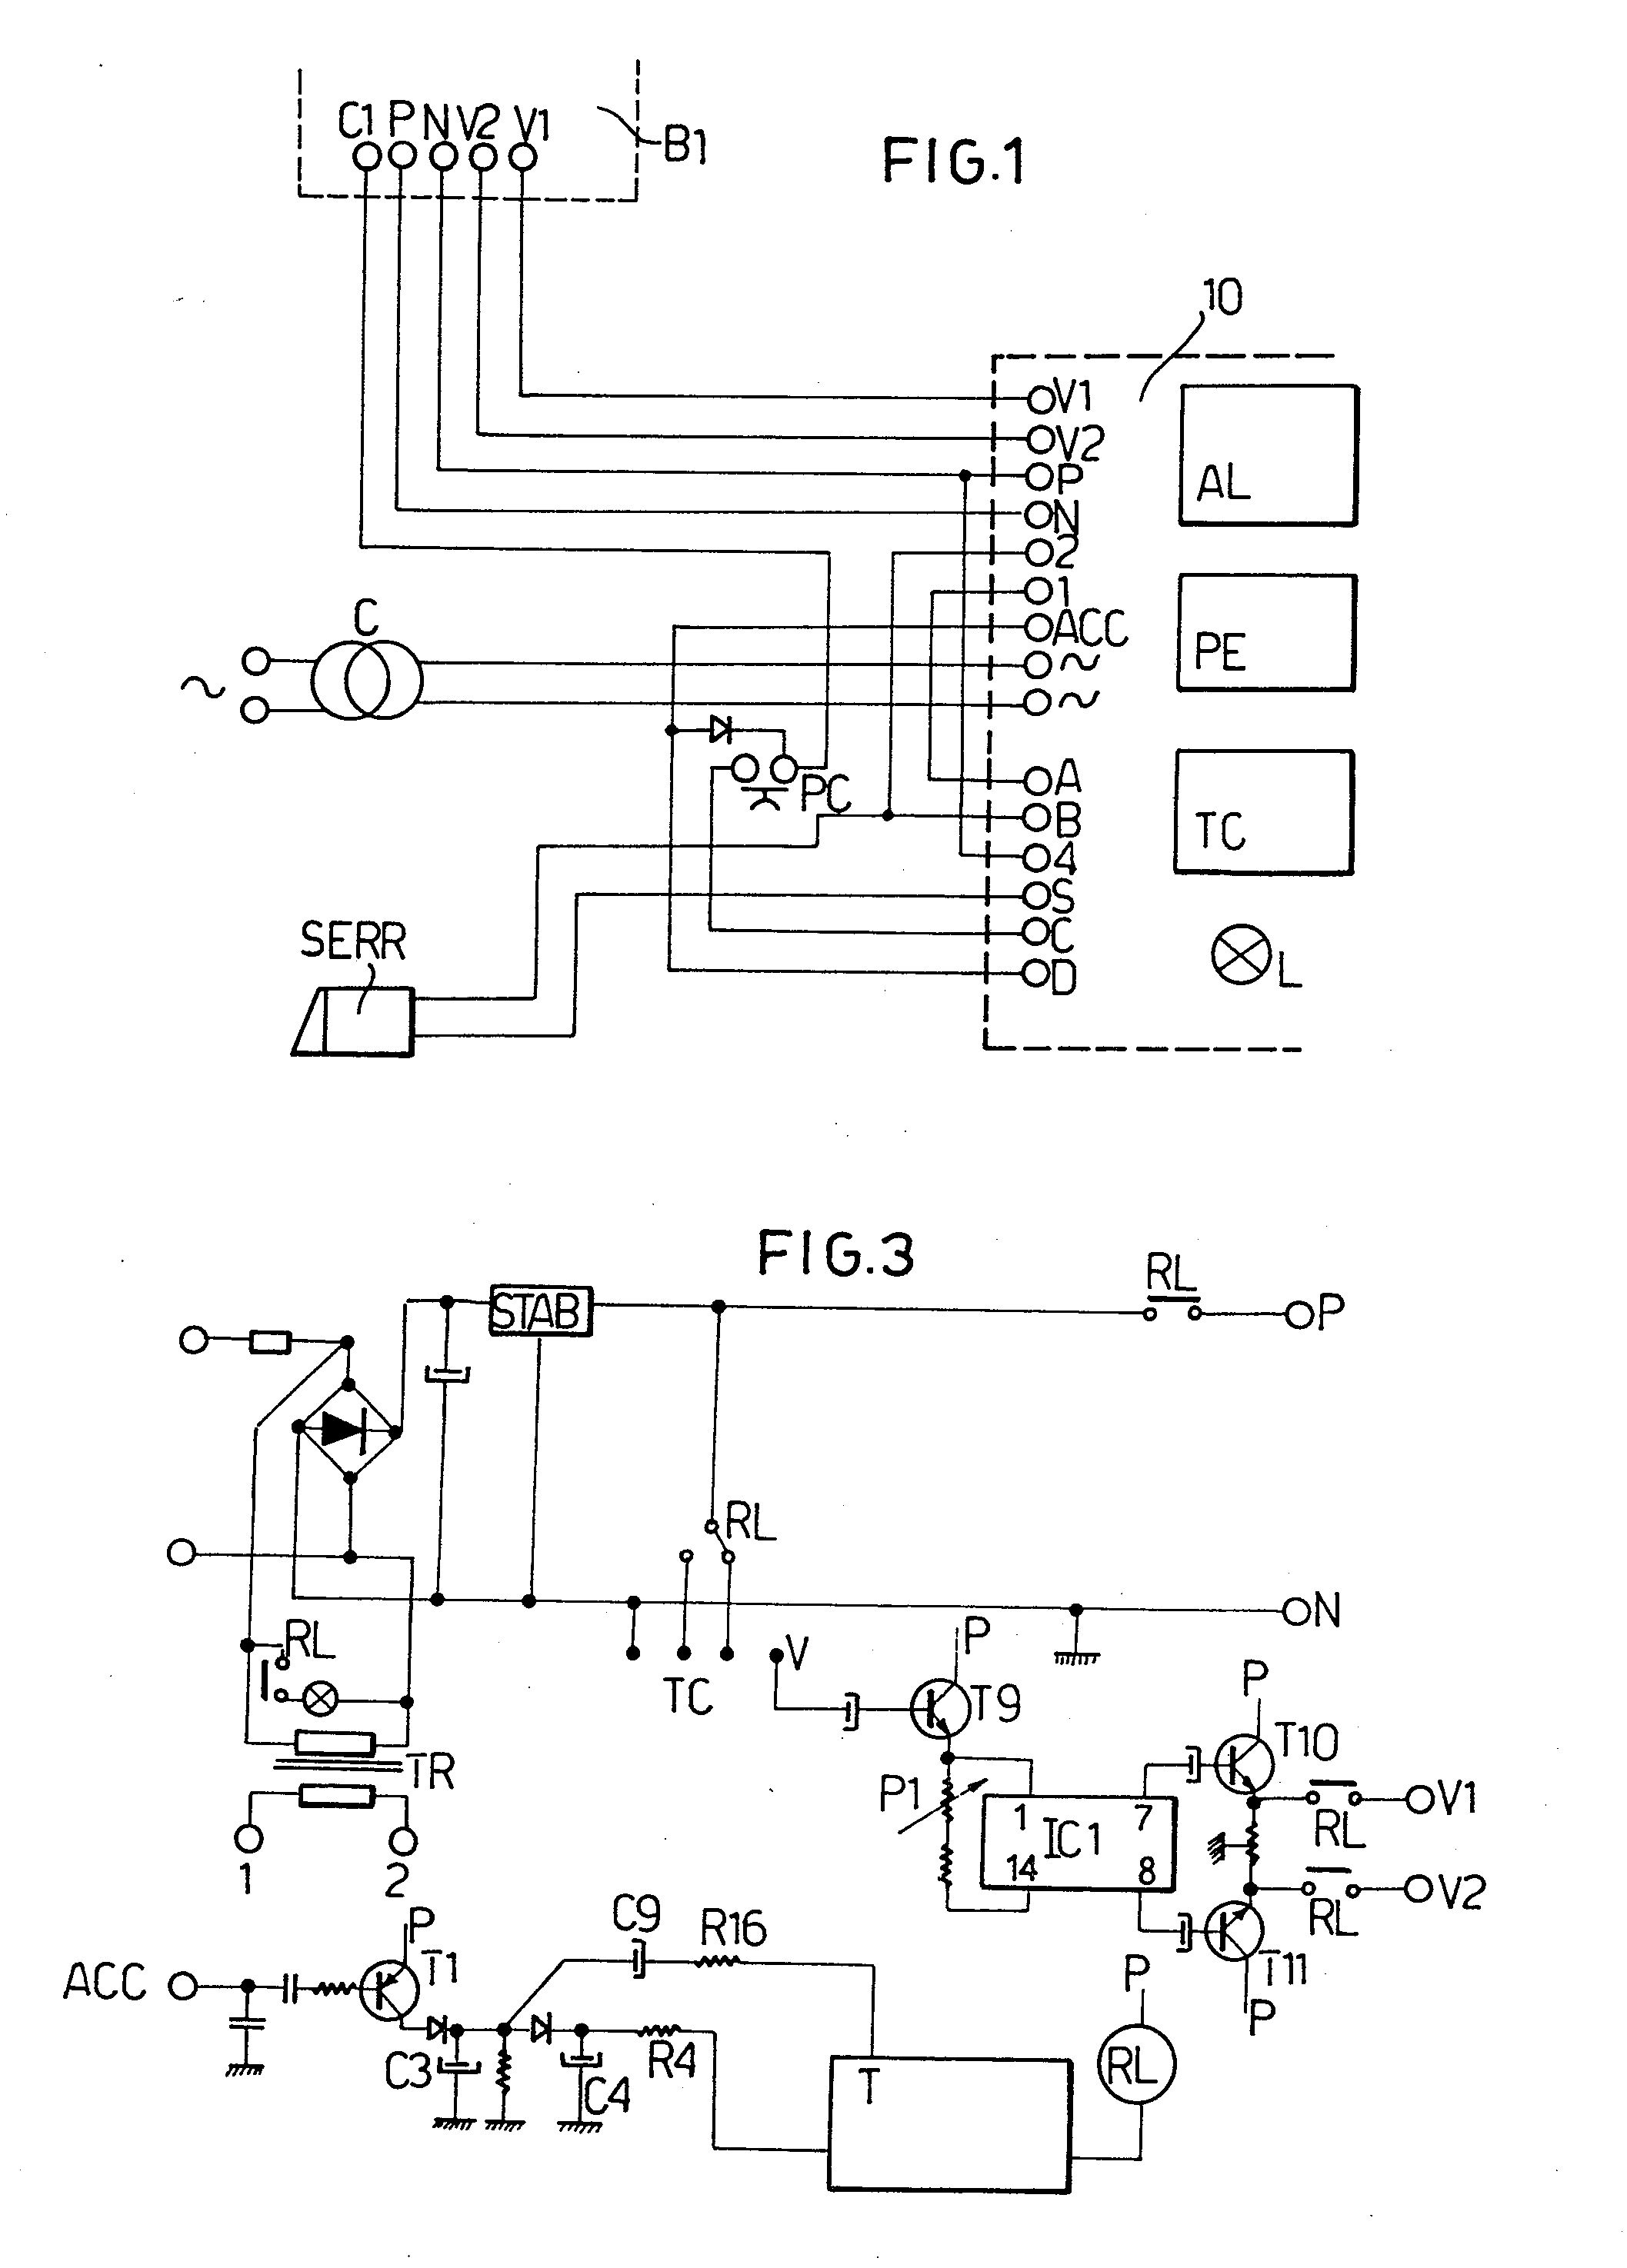 wiring diagram for comelit intercom